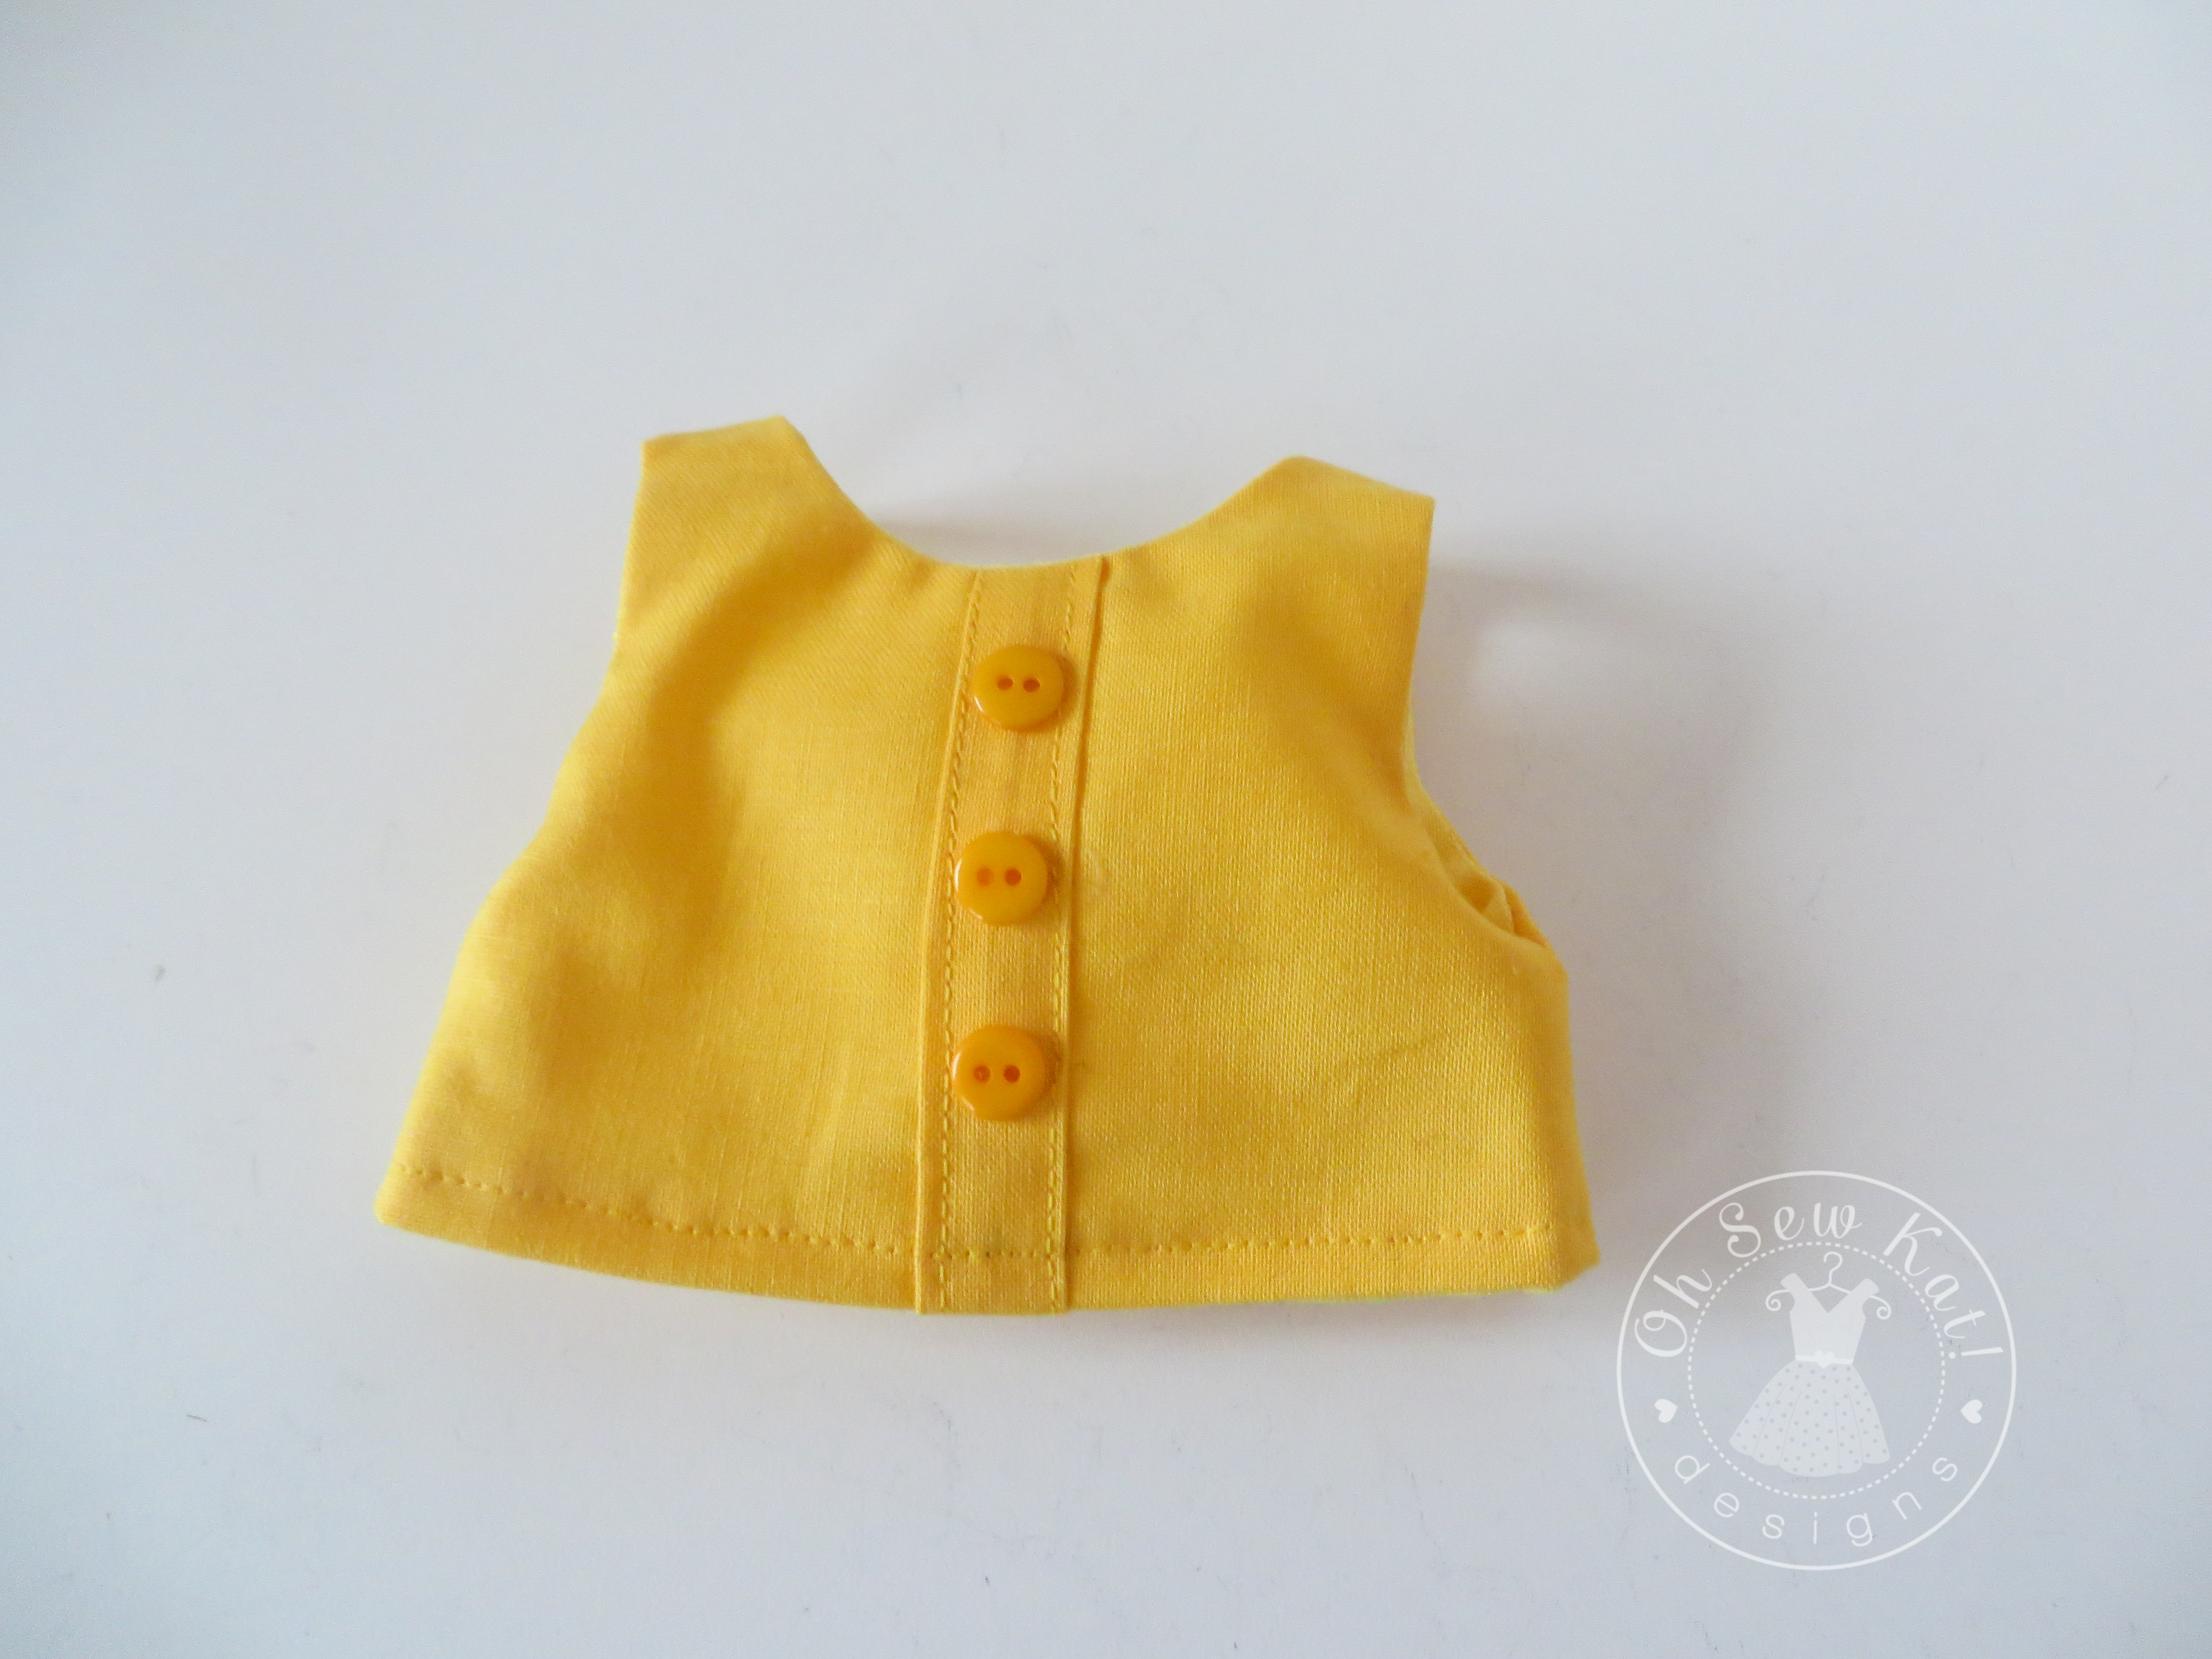 Doll Clothes Top and Dress Tutorials to step up a doll bodice with stitching or a placket. Easy sewing patterns for 18 inch doll clothes, plus free skirt sewing pattern, at www.ohsewkat.com. #dollclothes #sewingpattern #ohsewkat #18inchdolls #americangirldoll #welliewishers